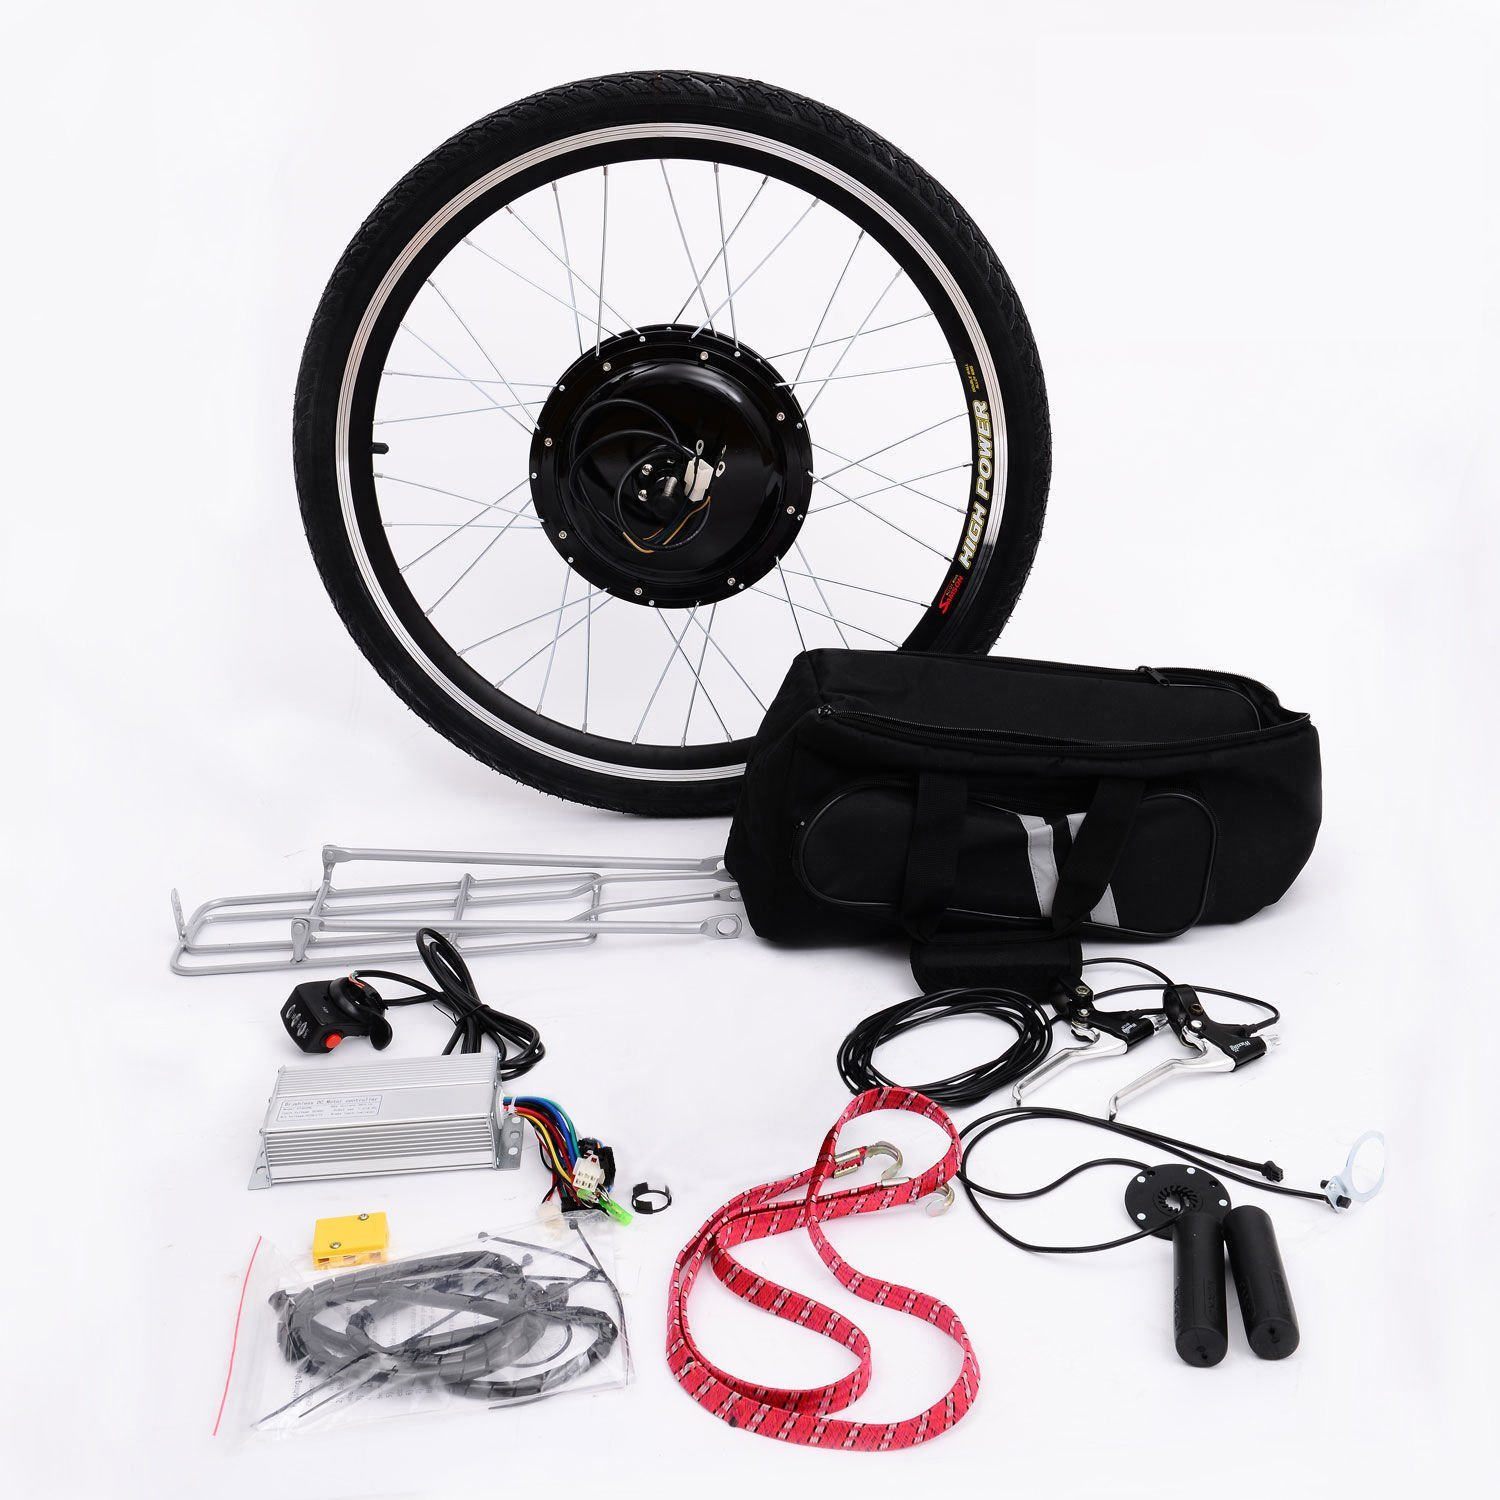 Aosom 26 Rear Wheel 48v 1000w Electric Battery Powered Wiring Diagram For Motorized Bicycle Motor Conversion Kit Cycle Frames Sports Outdoors